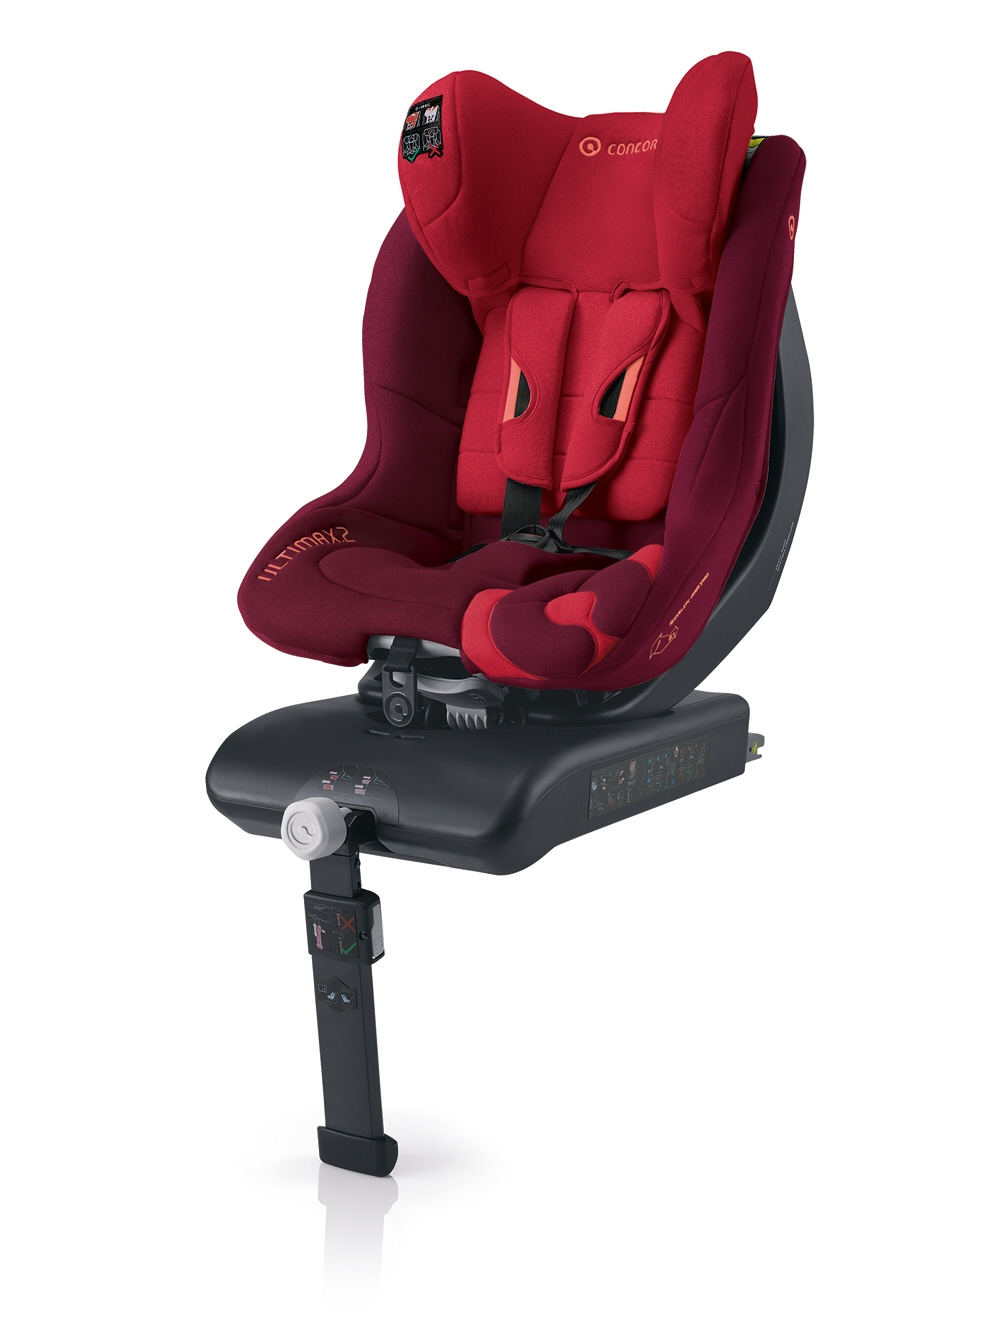 Si ge enfant ultimax 2 isofix par concord 2014 lava red for Siege enfant